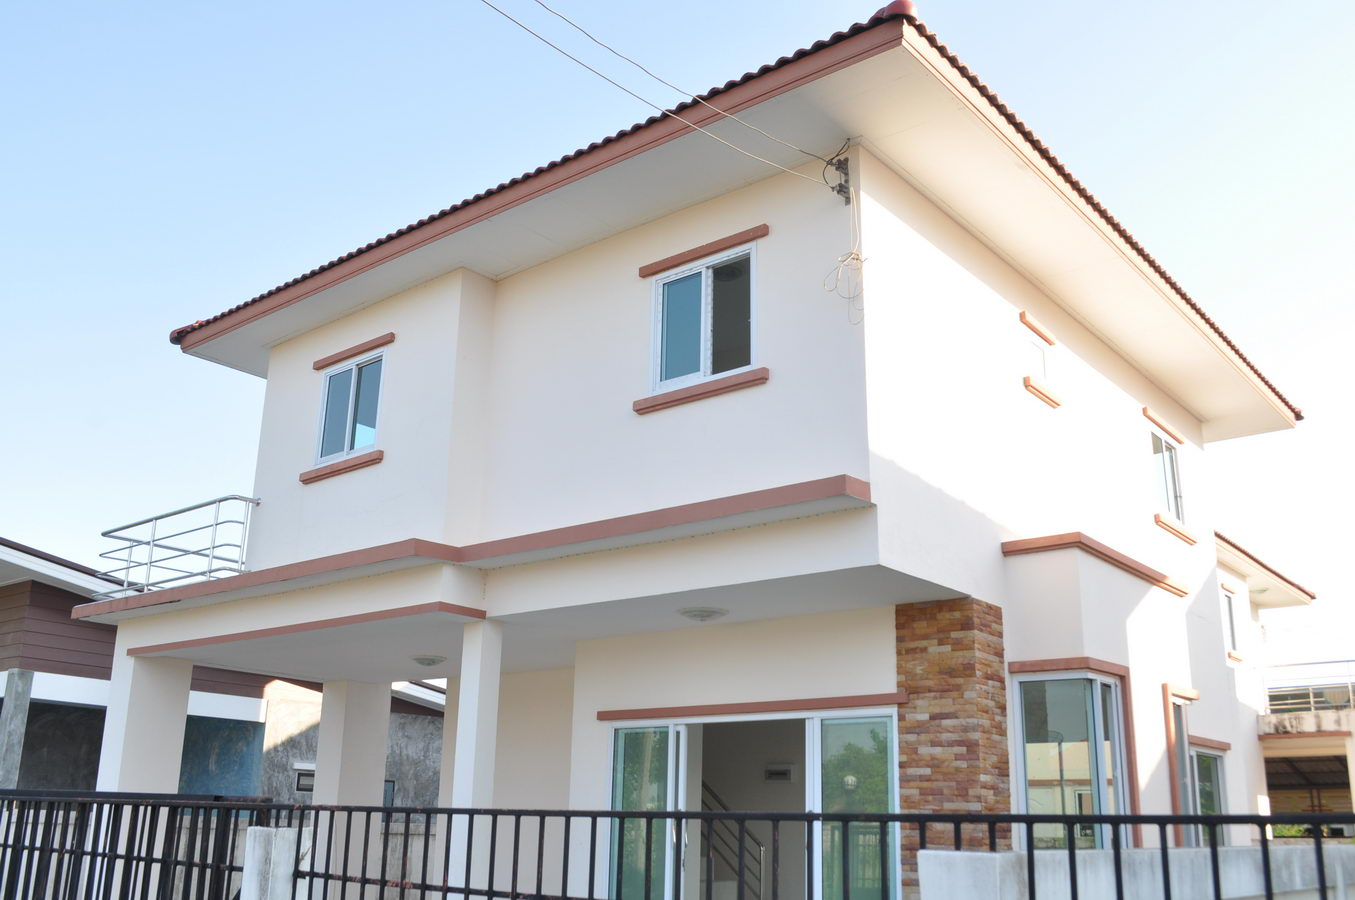 3 bedroom 2 bathroom 2 storey home for sale in prime - 3 bedroom 3 bathroom homes for sale ...